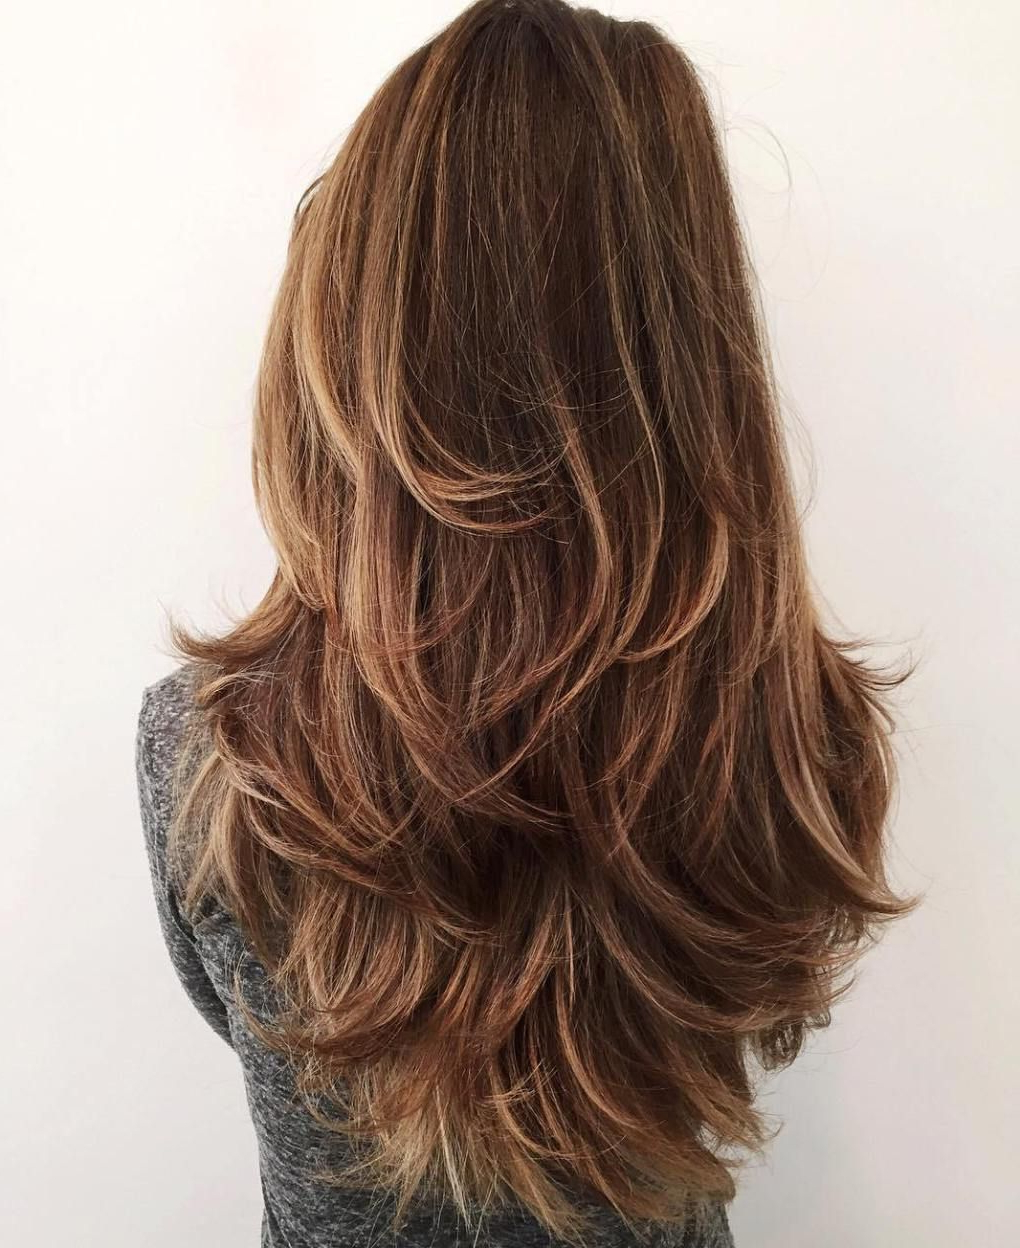 50 Lovely Long Shag Haircuts For Effortless Stylish Looks (Gallery 8 of 20)